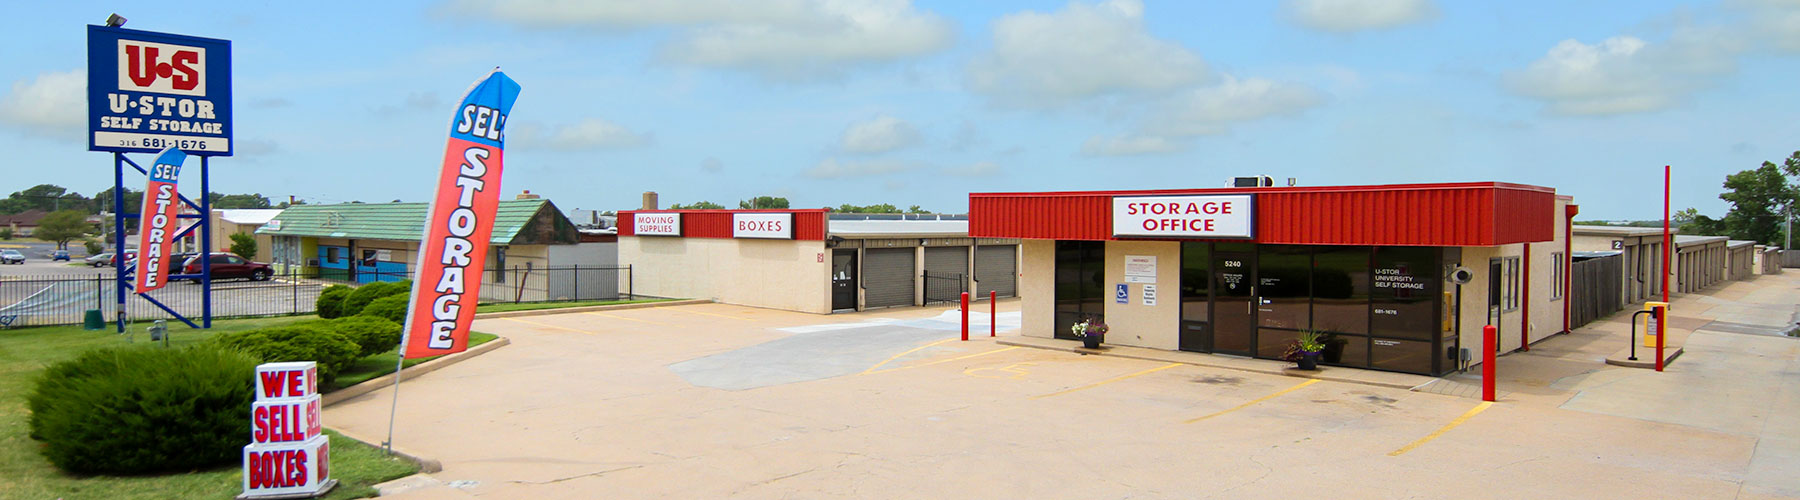 U-Stor University is located at 5240 E. 21st St, Wichita, KS. Call 316-512-4960 for information.